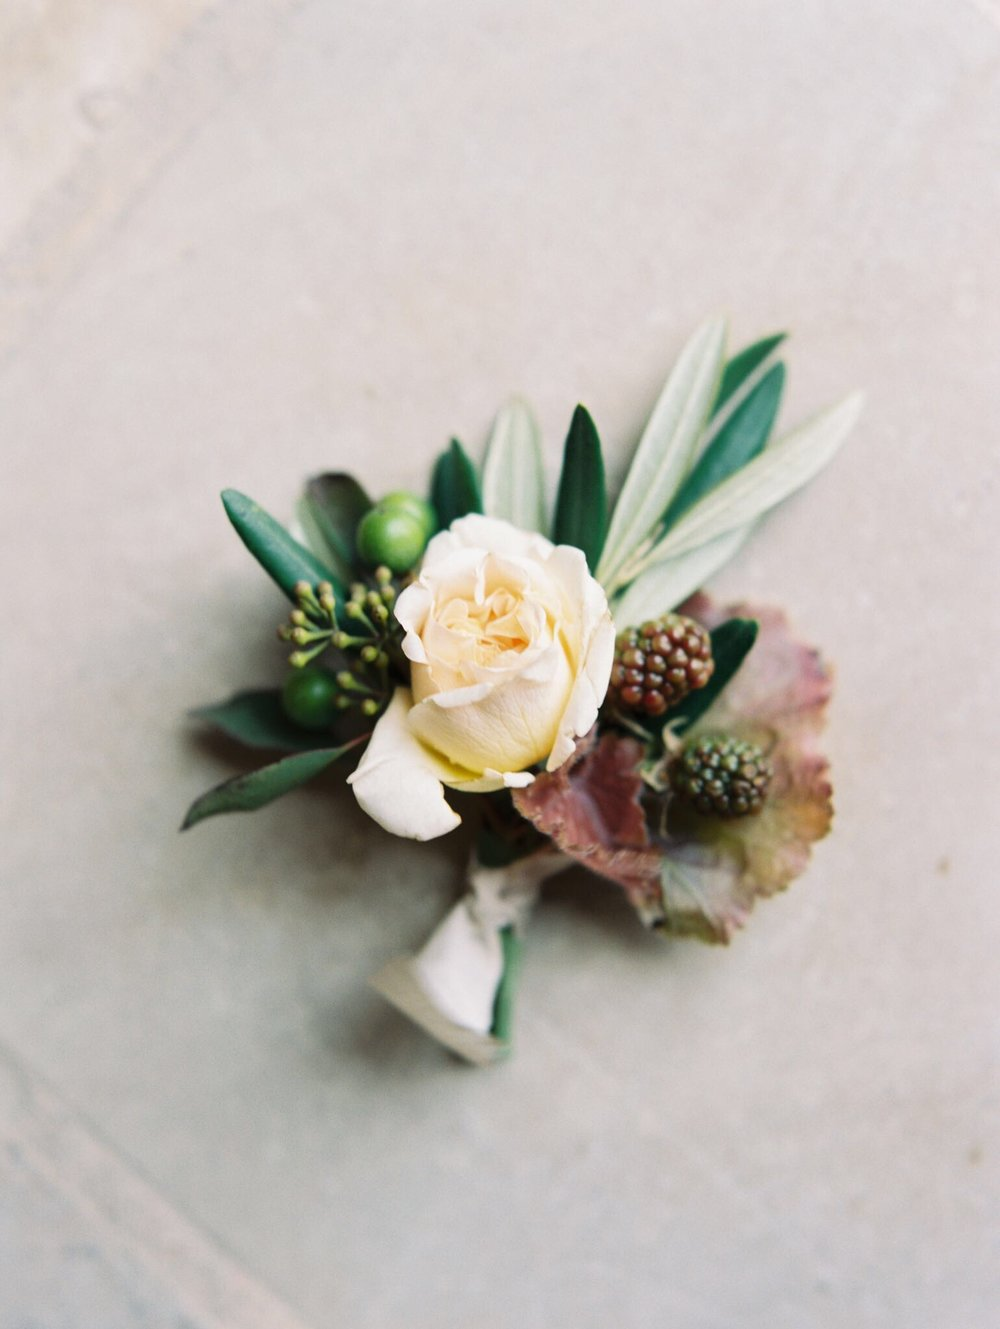 For in-store pick-up  |  collections are a la carte with no price minimum Pick-up bridal party florals from our boutique shop: Bouquets, boutonnières, corsages, flower crowns, hair accents, cake flowers, and more...